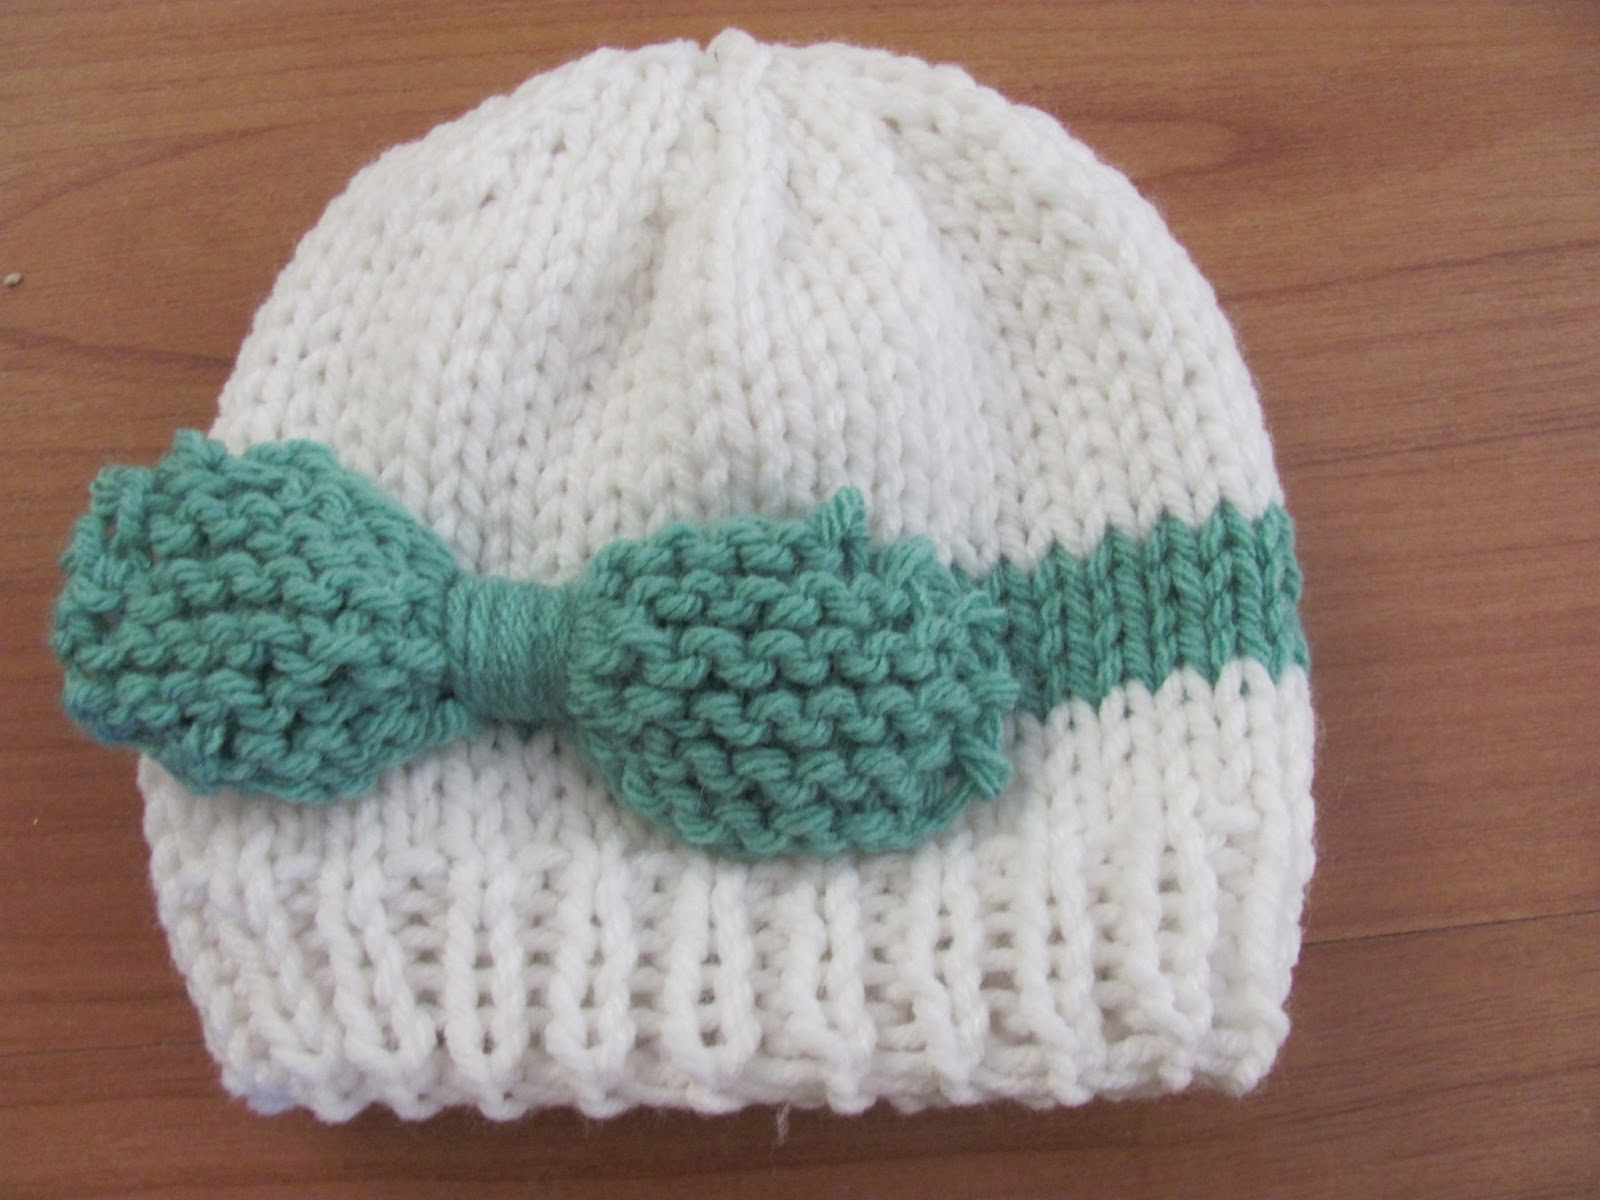 Knitting Patterns For Baby Boy Hats : Twenty Something Granny: Knitted Baby Bow Hat